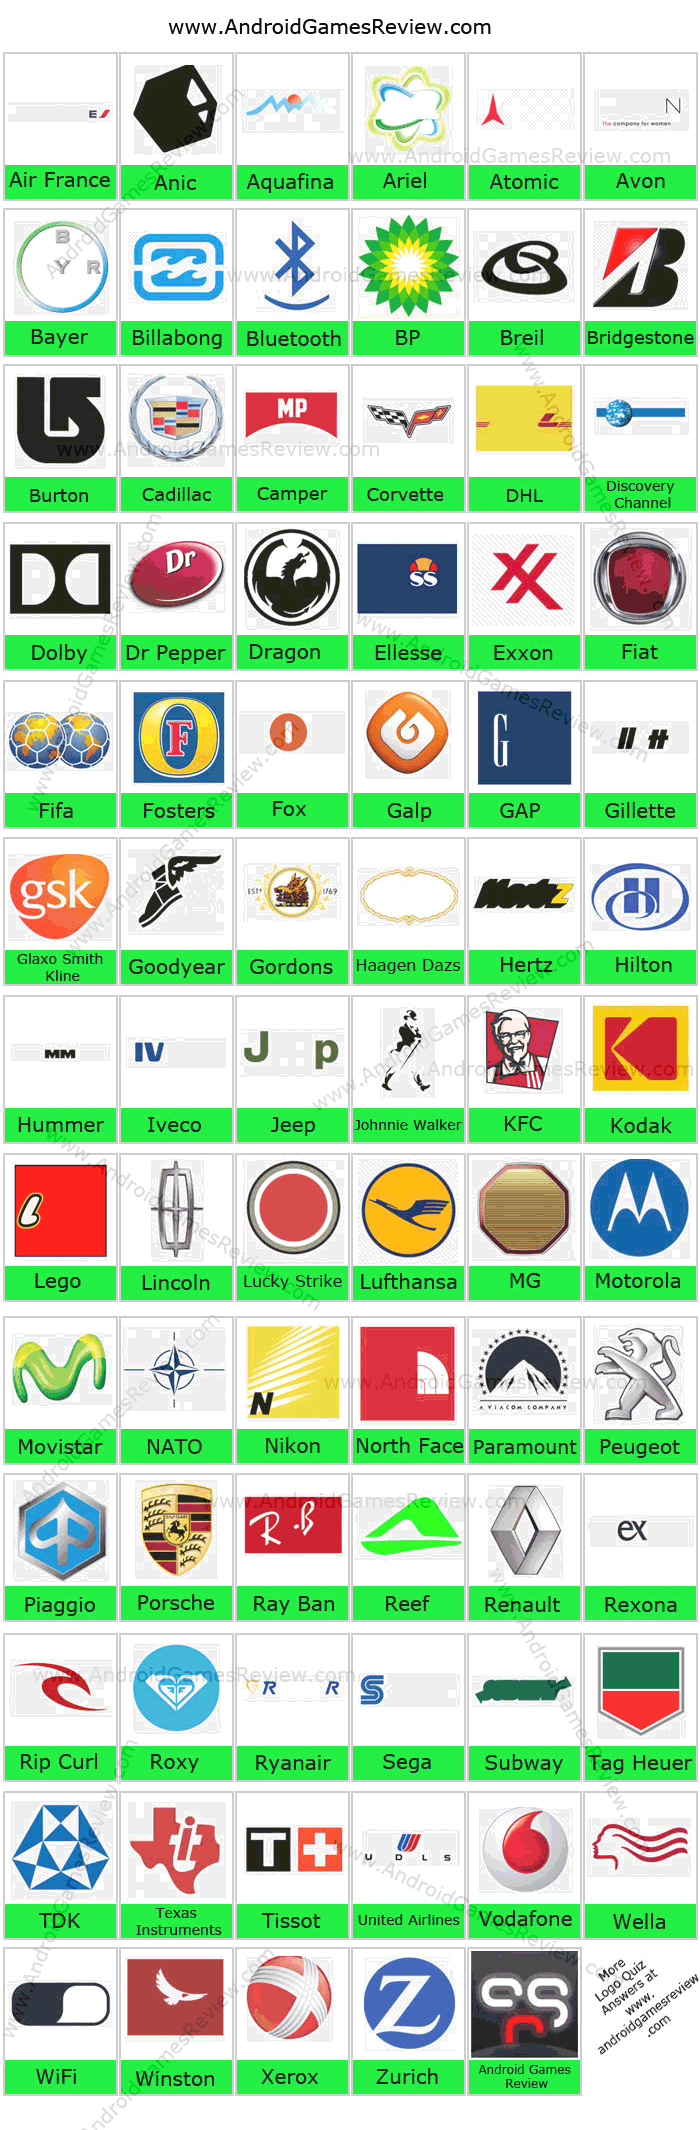 ... with new logo quiz answers if the developers update their games